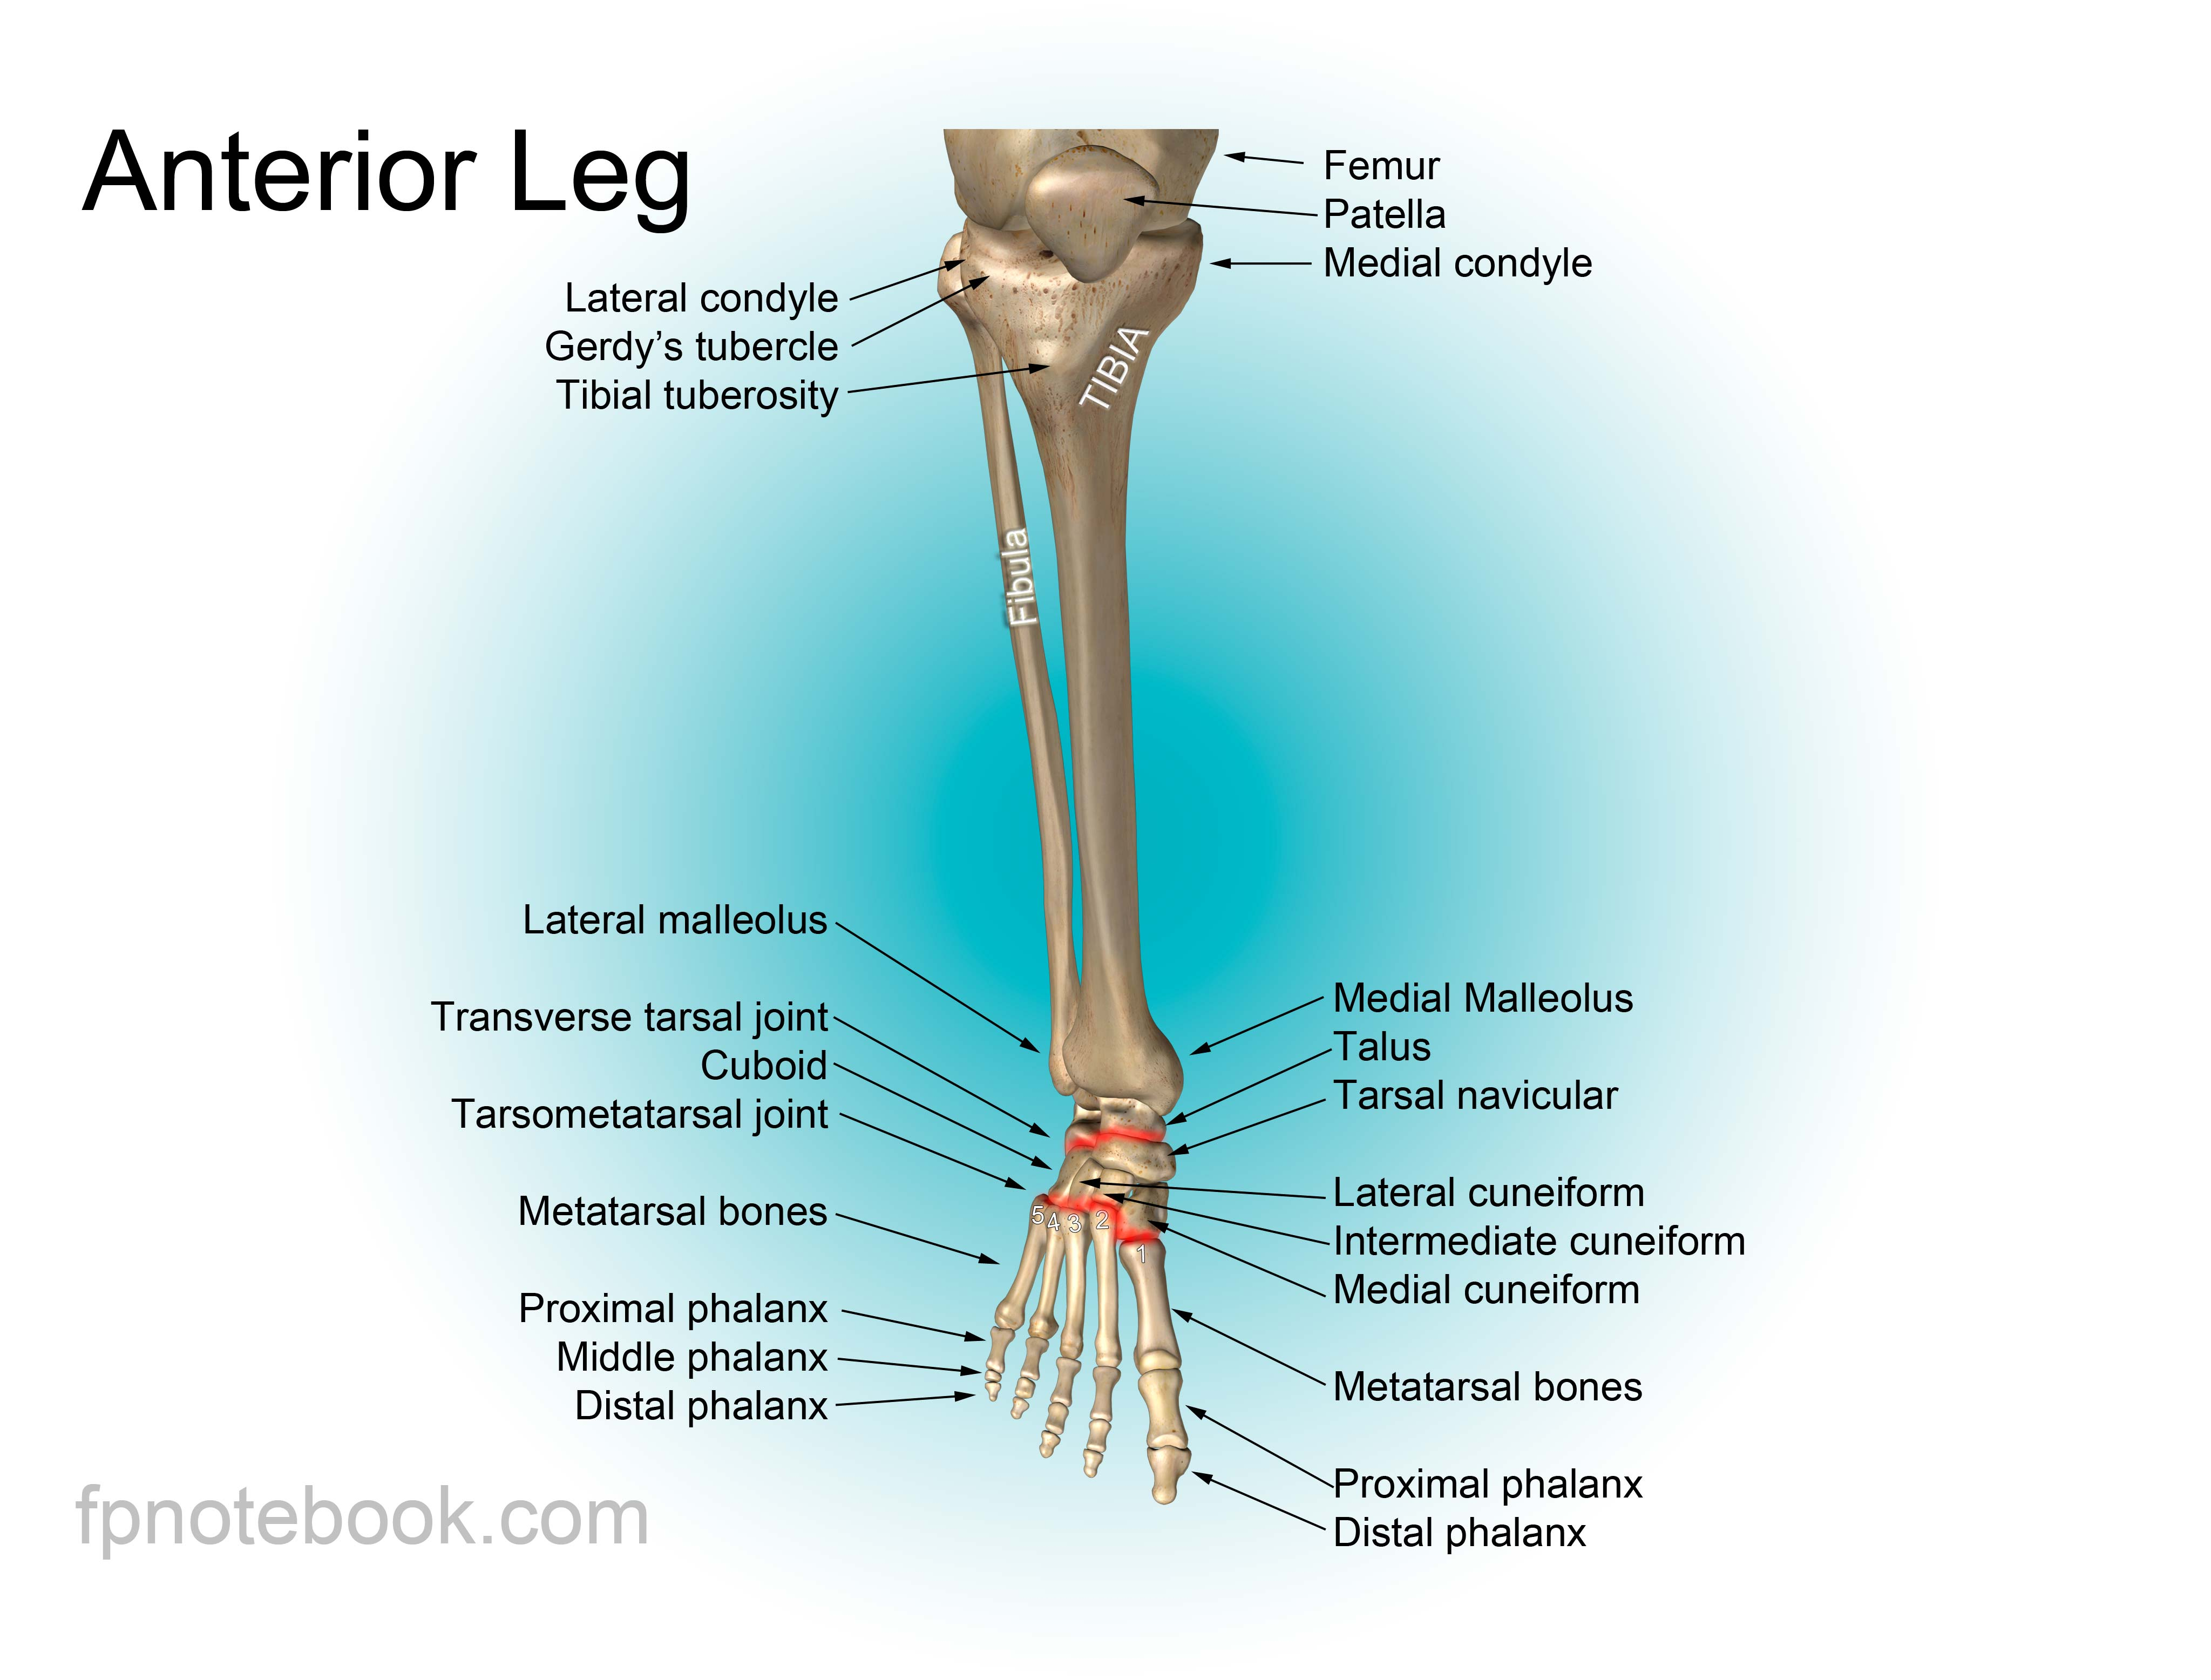 Anatomy of the foot and leg